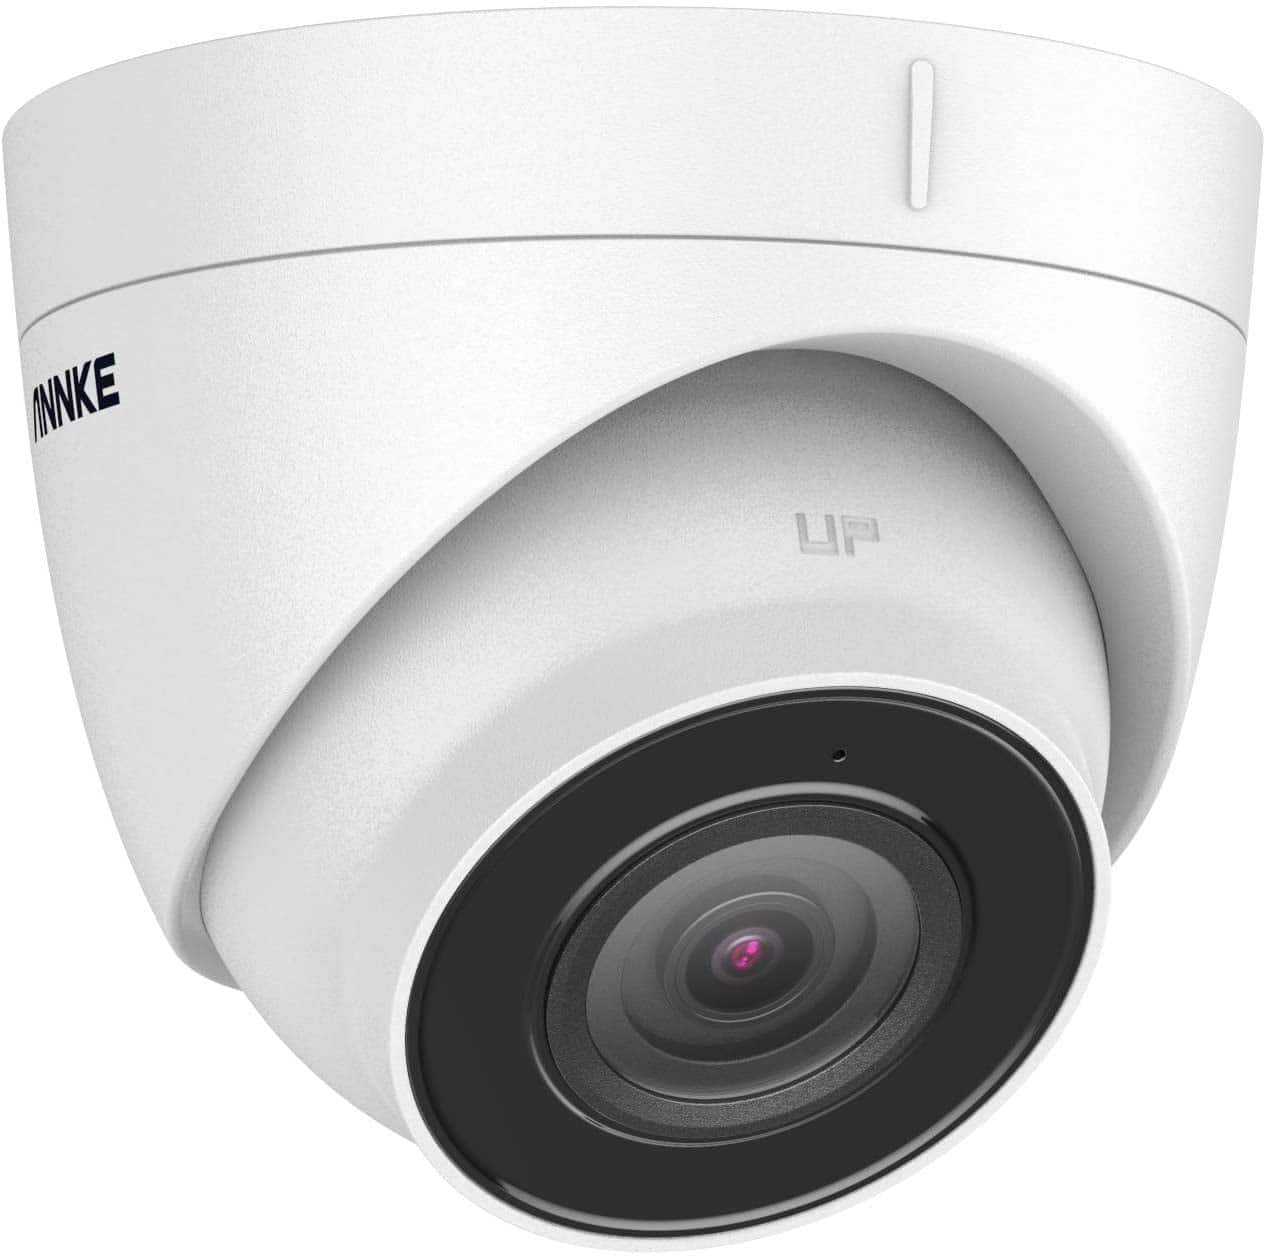 ANNKE C800 4K Ultra HD PoE Security Camera with Mic, $71.49, Free Shipping